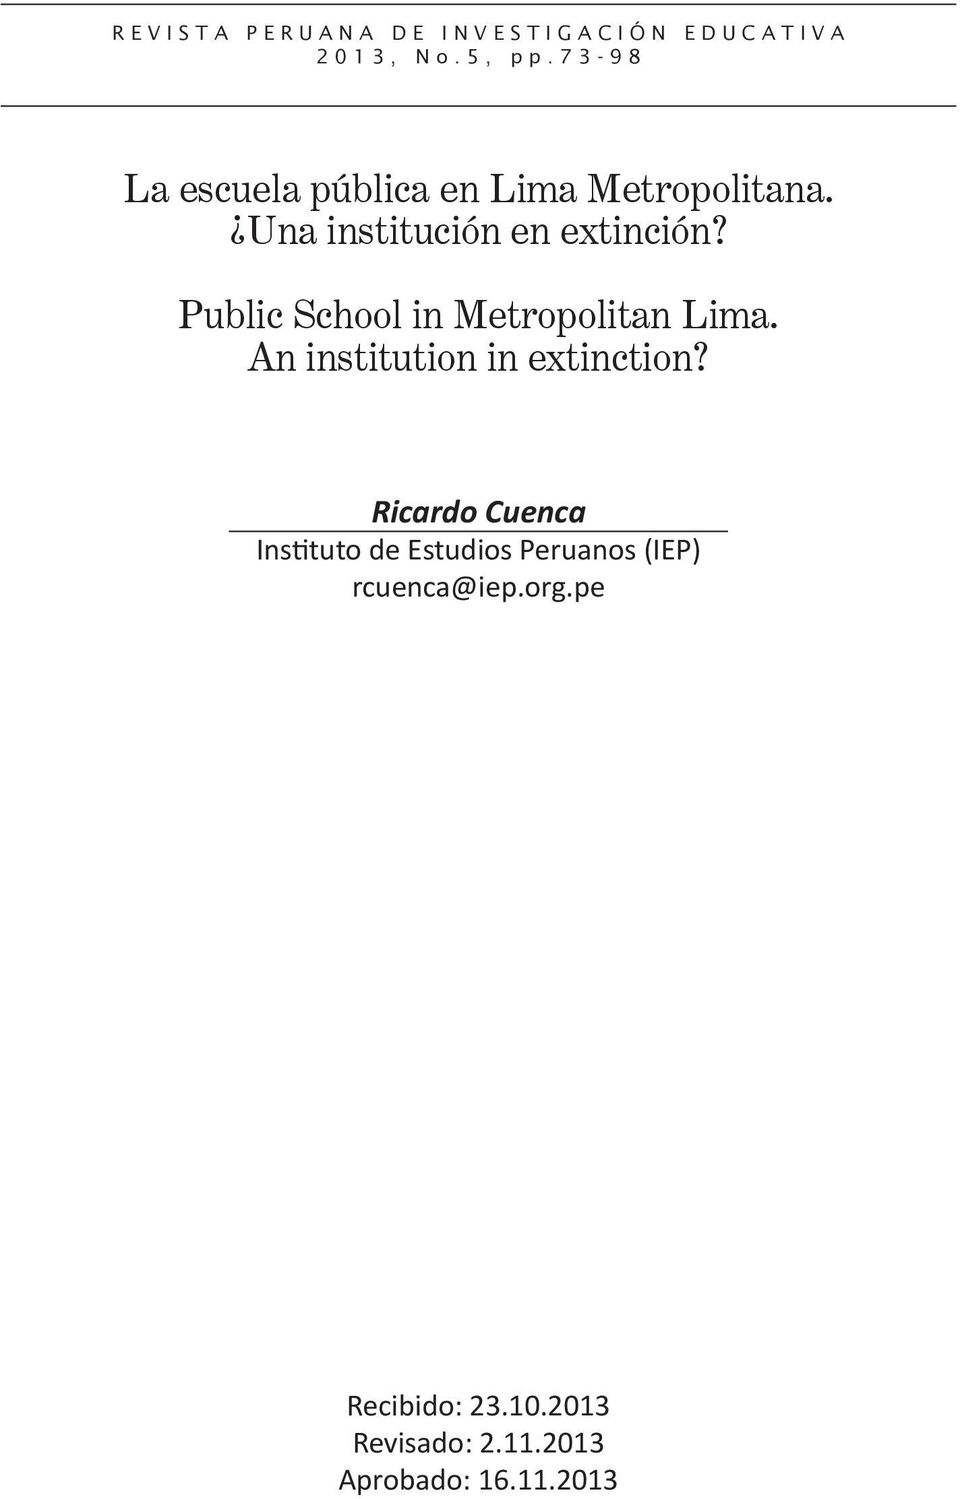 Public School in Metropolitan Lima. An institution in extinction?